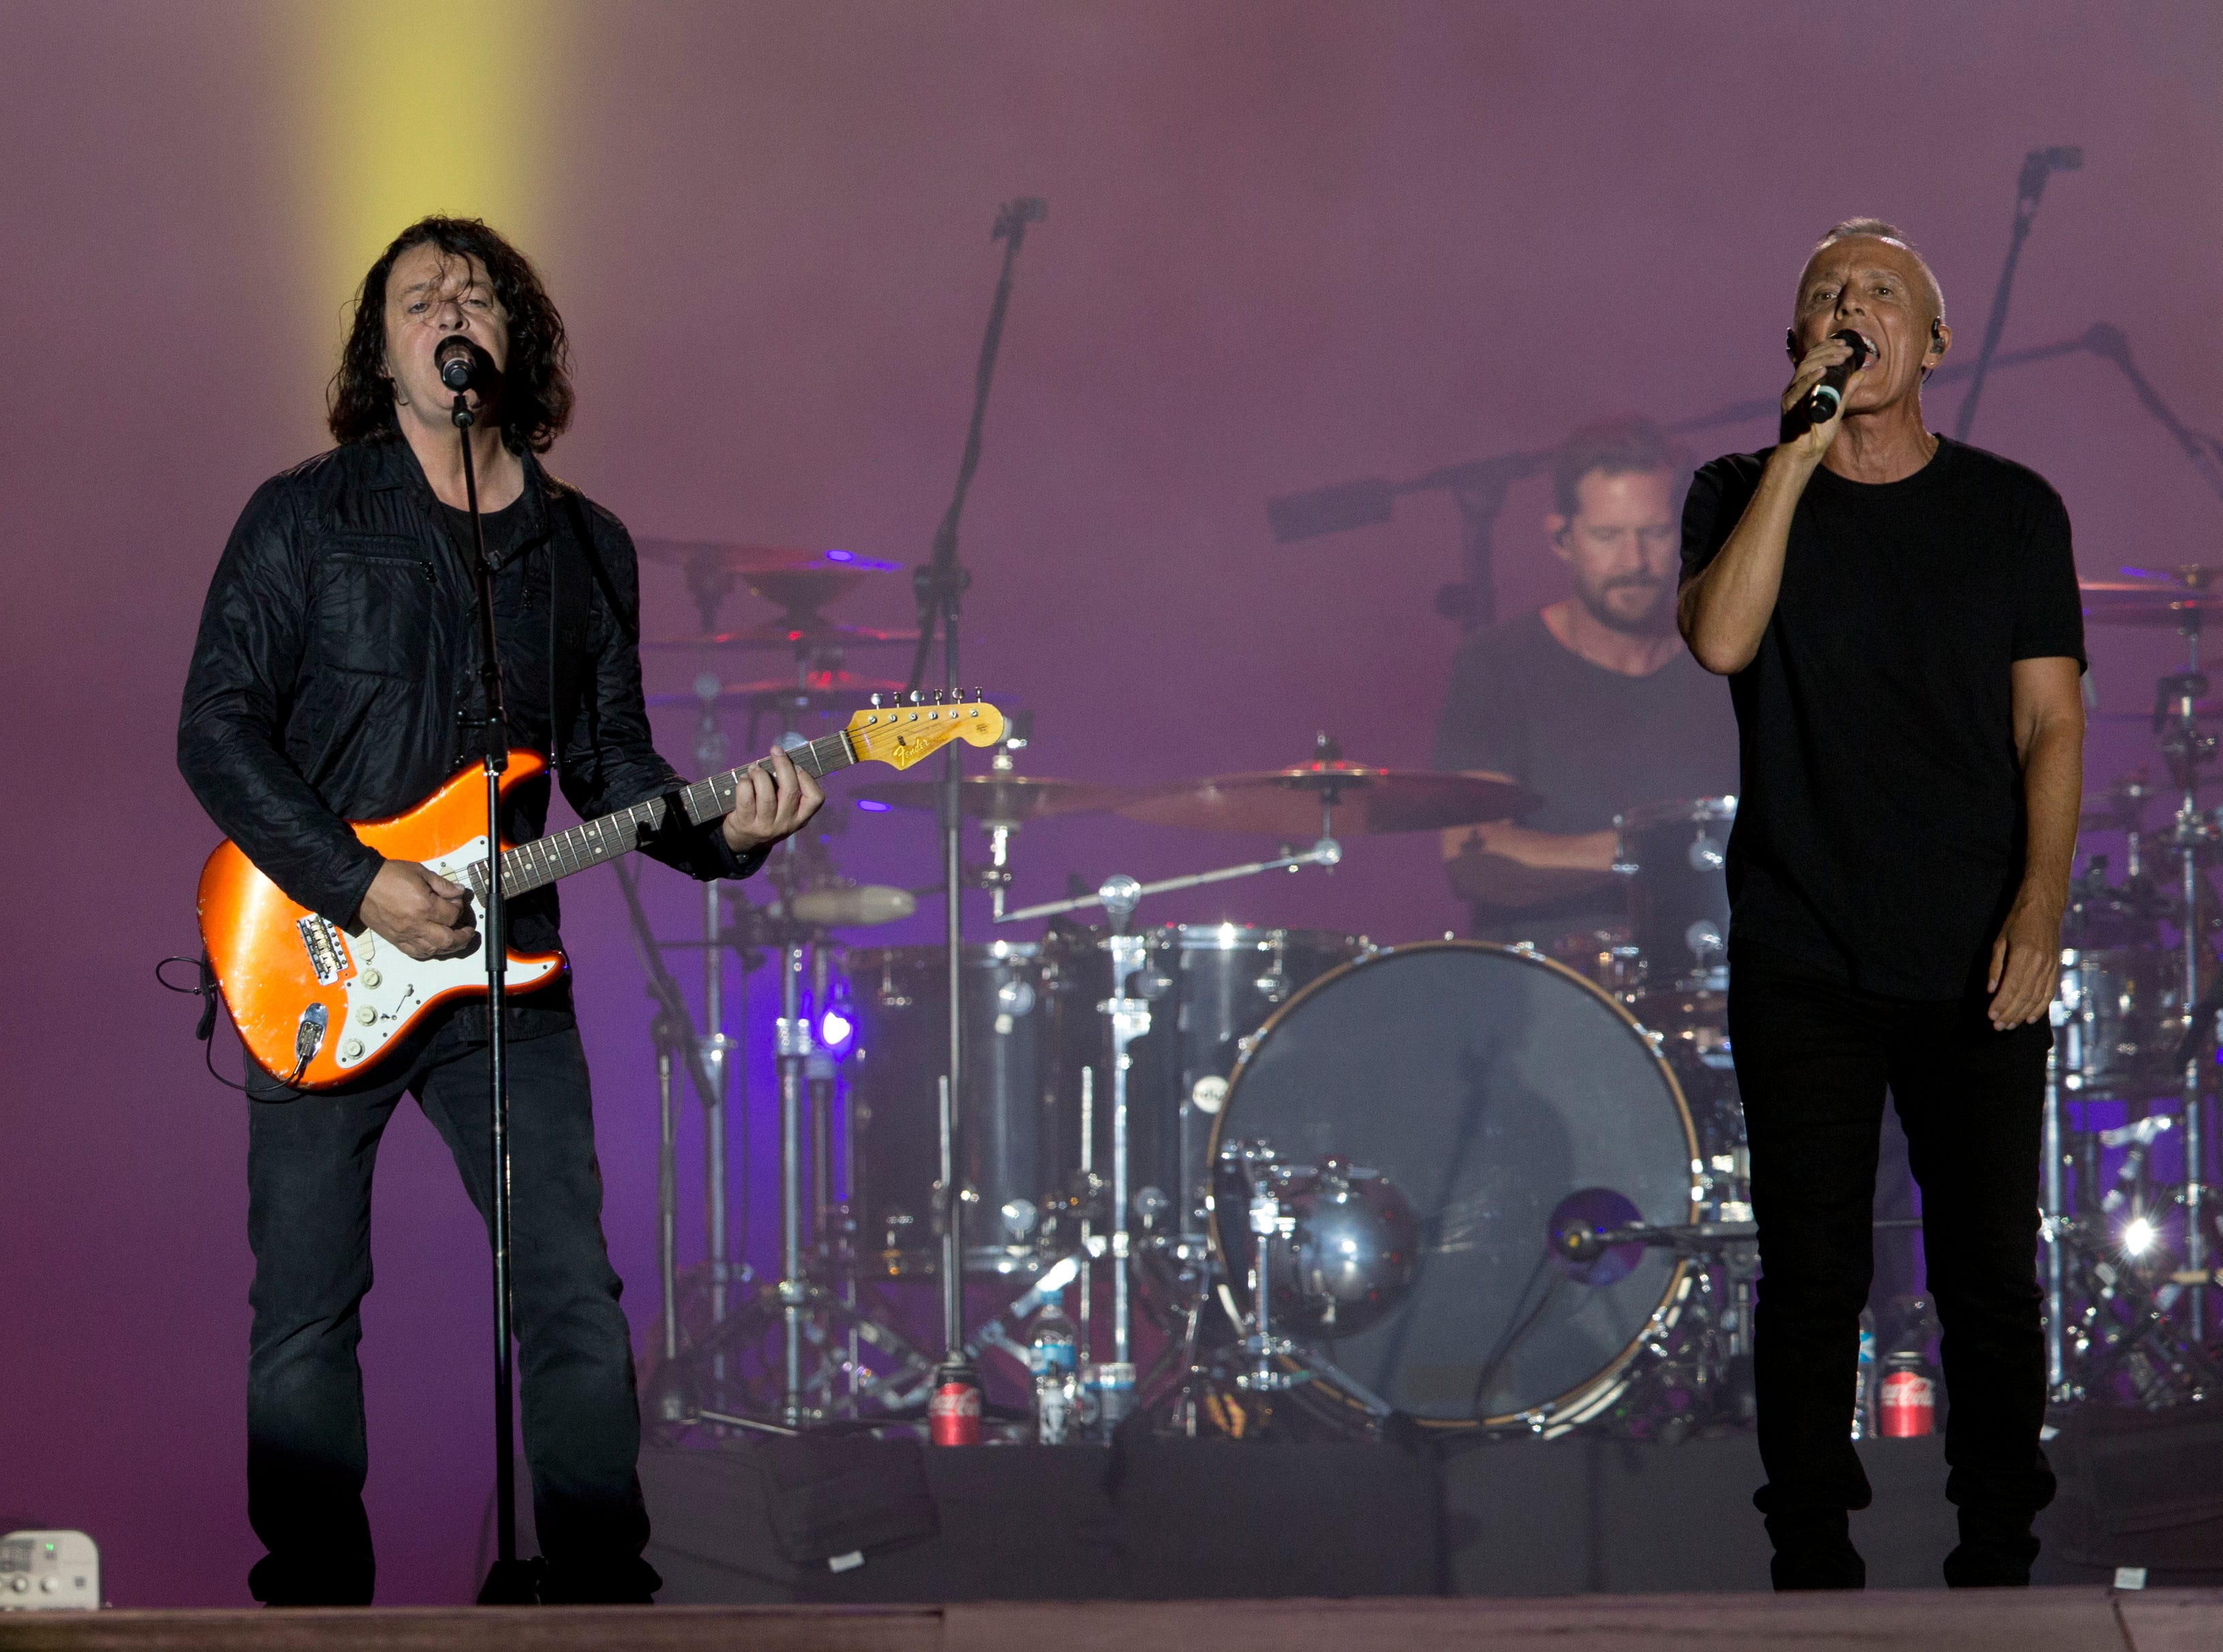 Curt Smith (right) and Roland Orzabal of Tears for Fears perform Sept. 22, 2017, at the Rock in Rio music festival in Rio de Janeiro, Brazil. Tears for Fears will perform at SunFest in West Palm Beach.